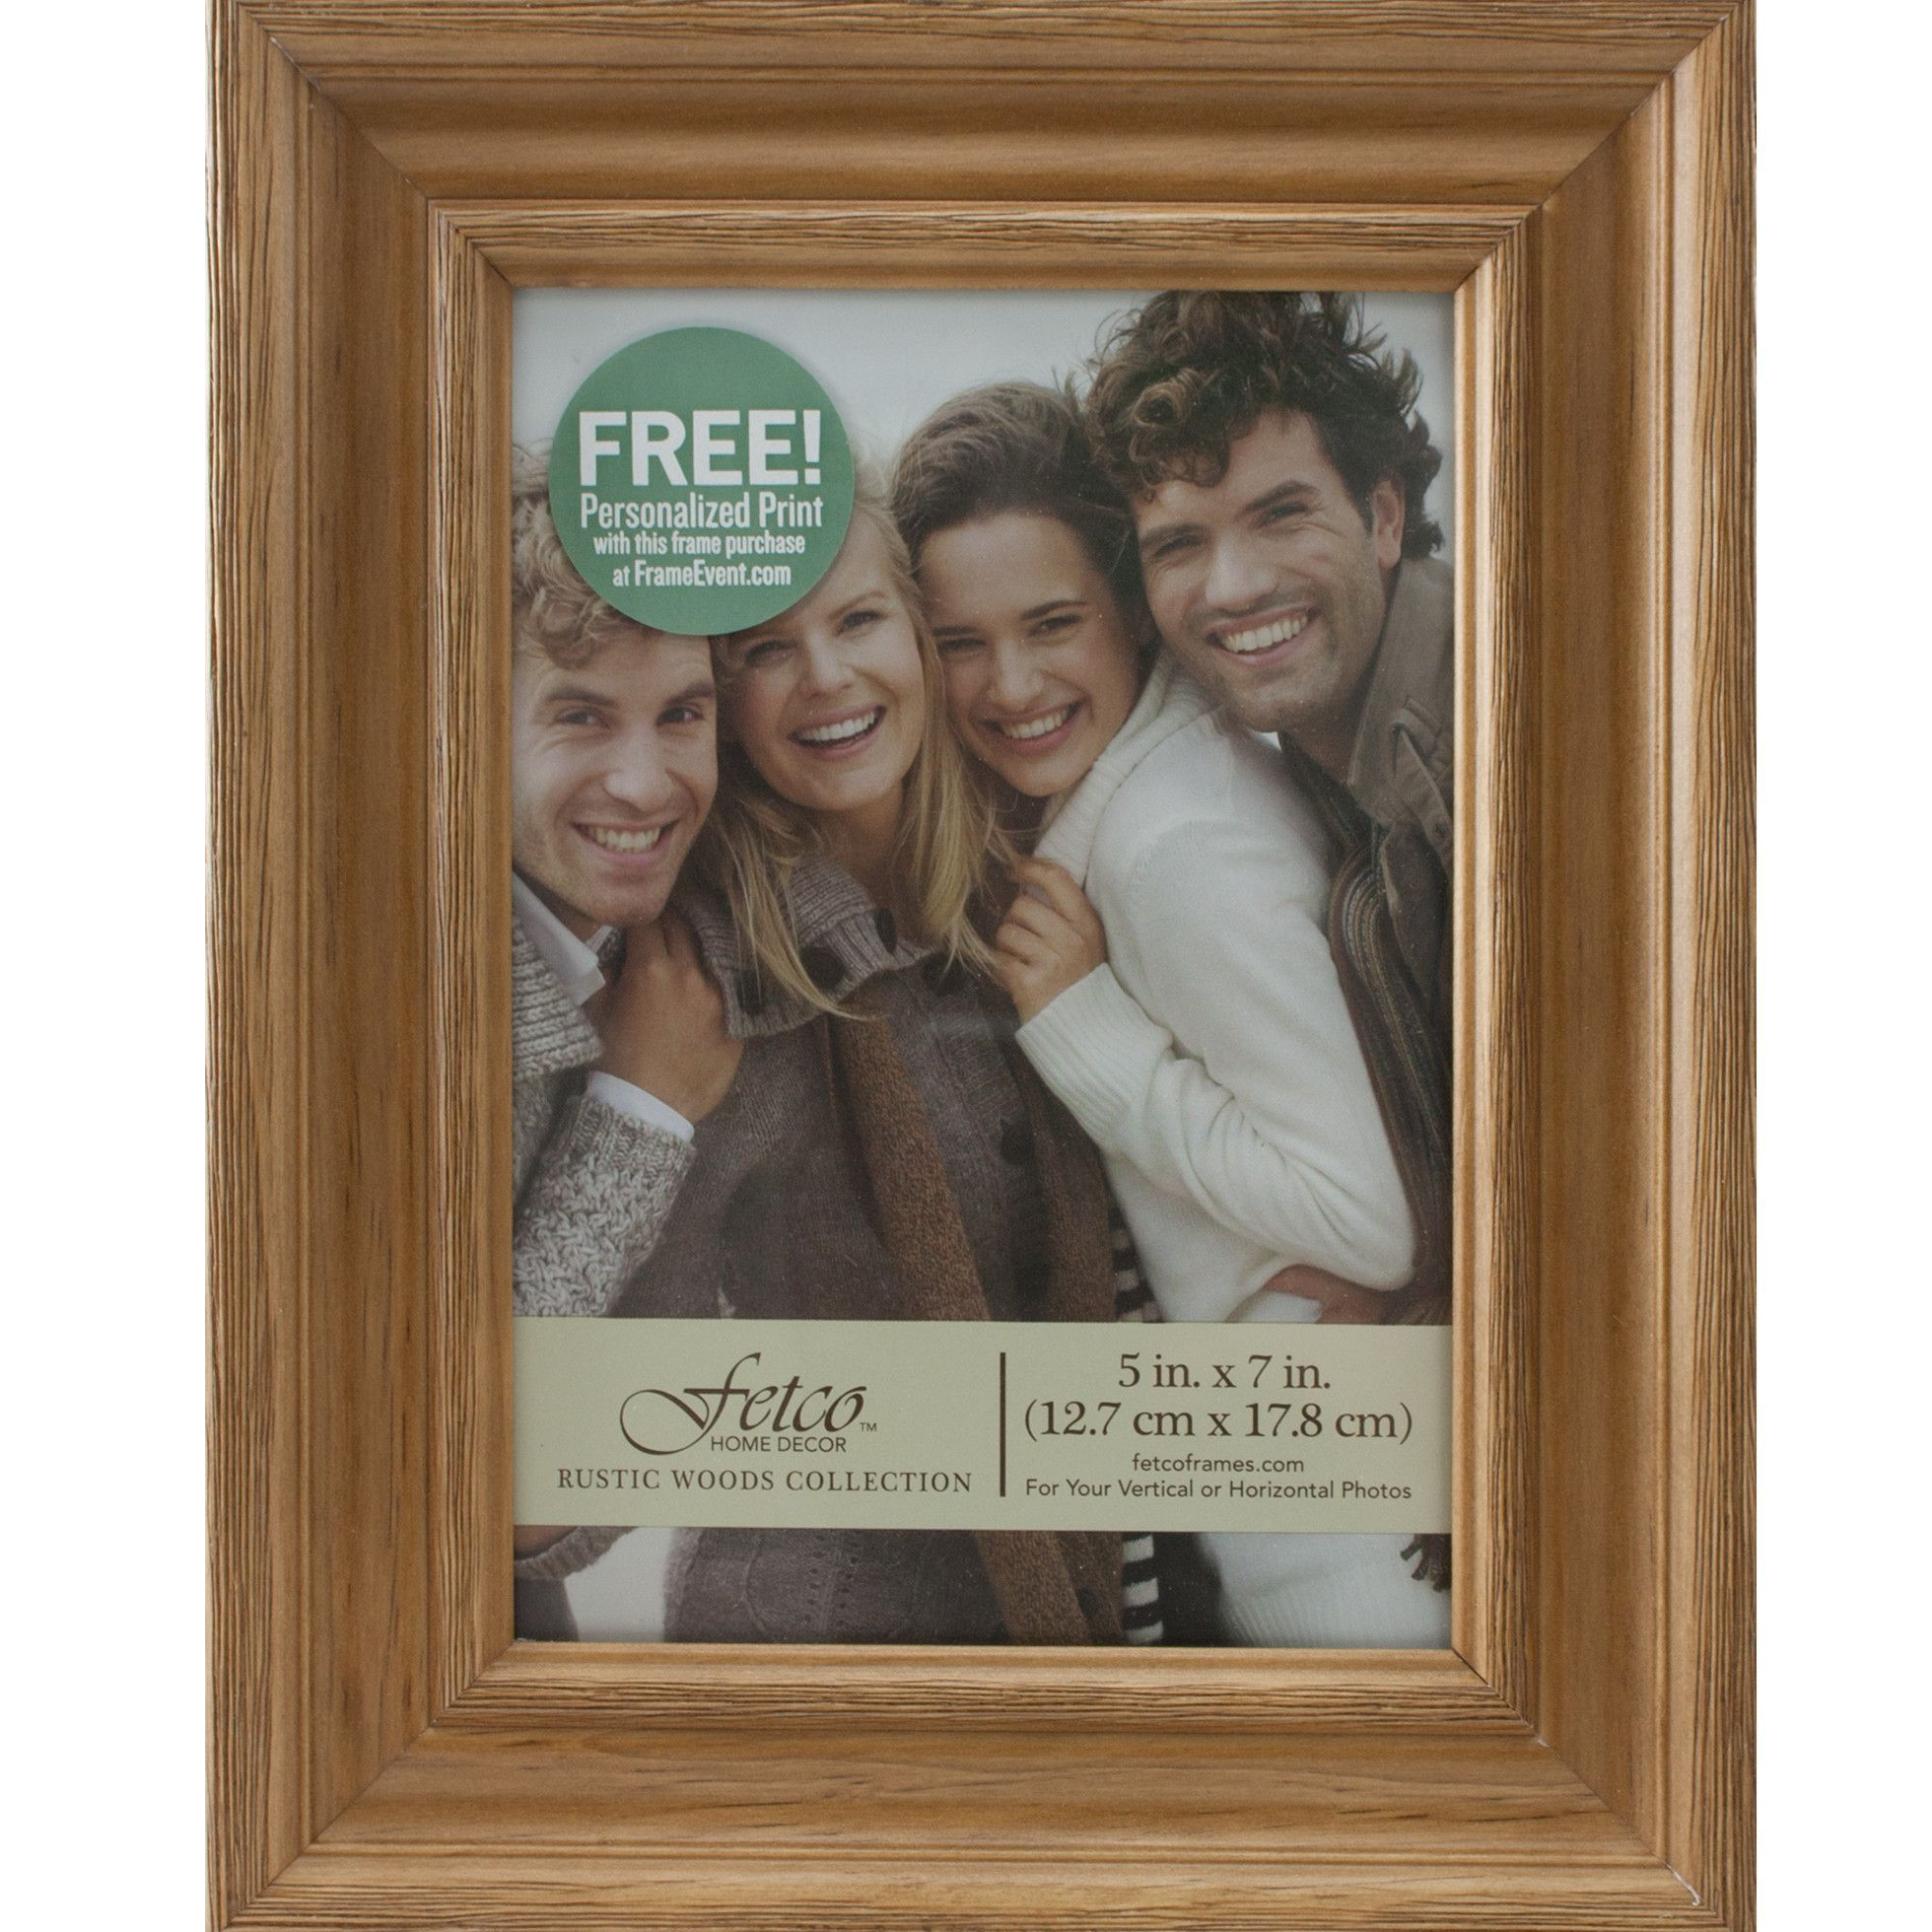 Valiente Picture Frame